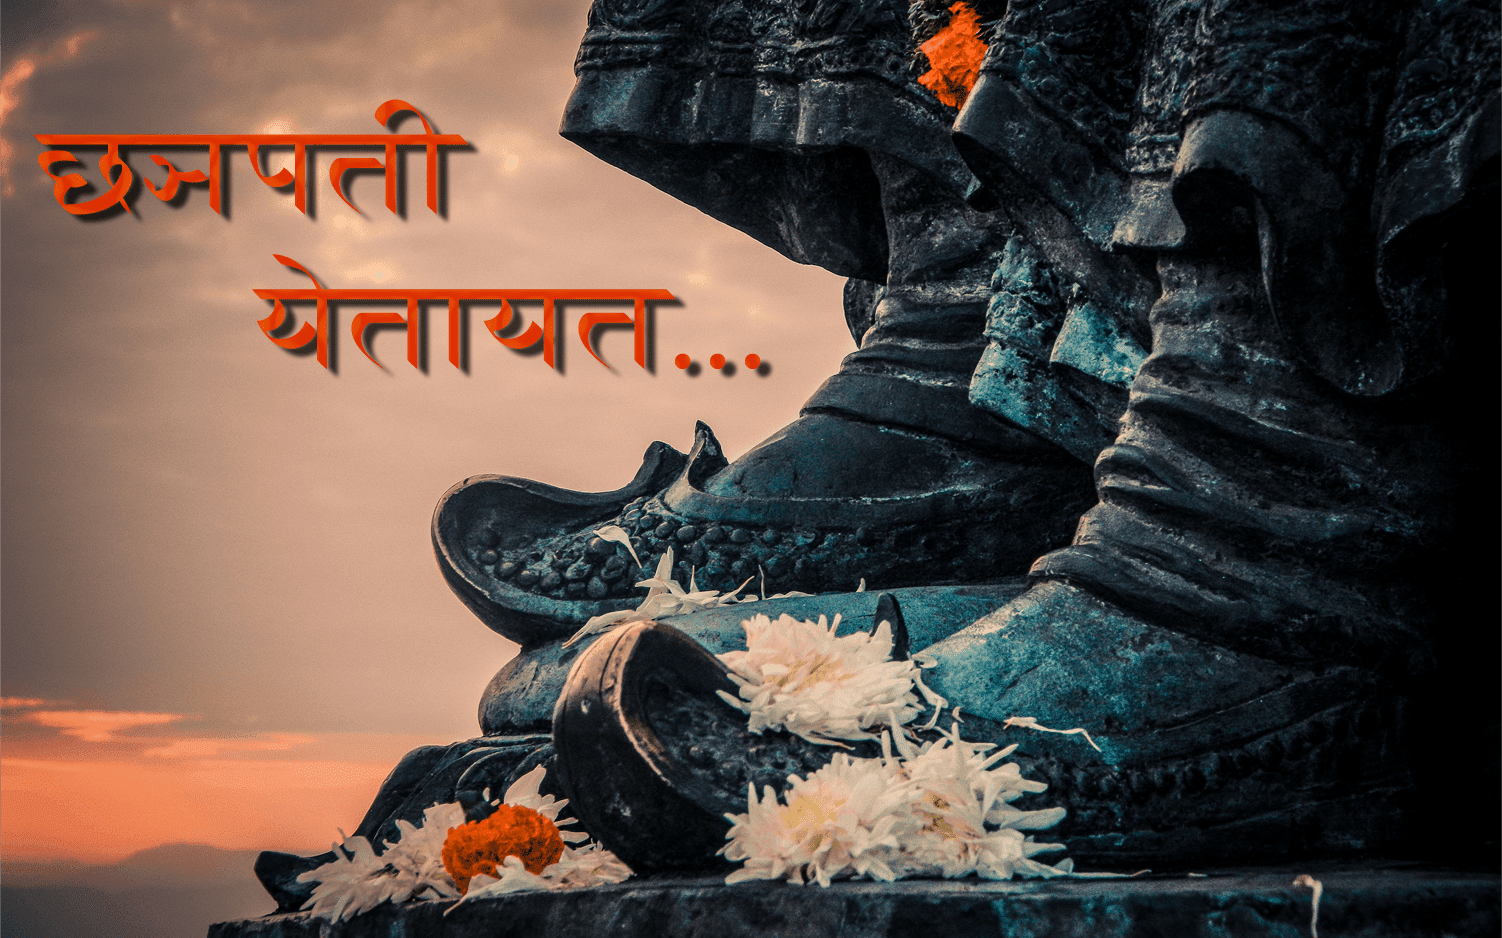 Hd wallpaper shivaji maharaj - Raje Shivaji Maharaj Hd Wallpapers Http All In Onewallpapersfortollyto3d Blogspot In